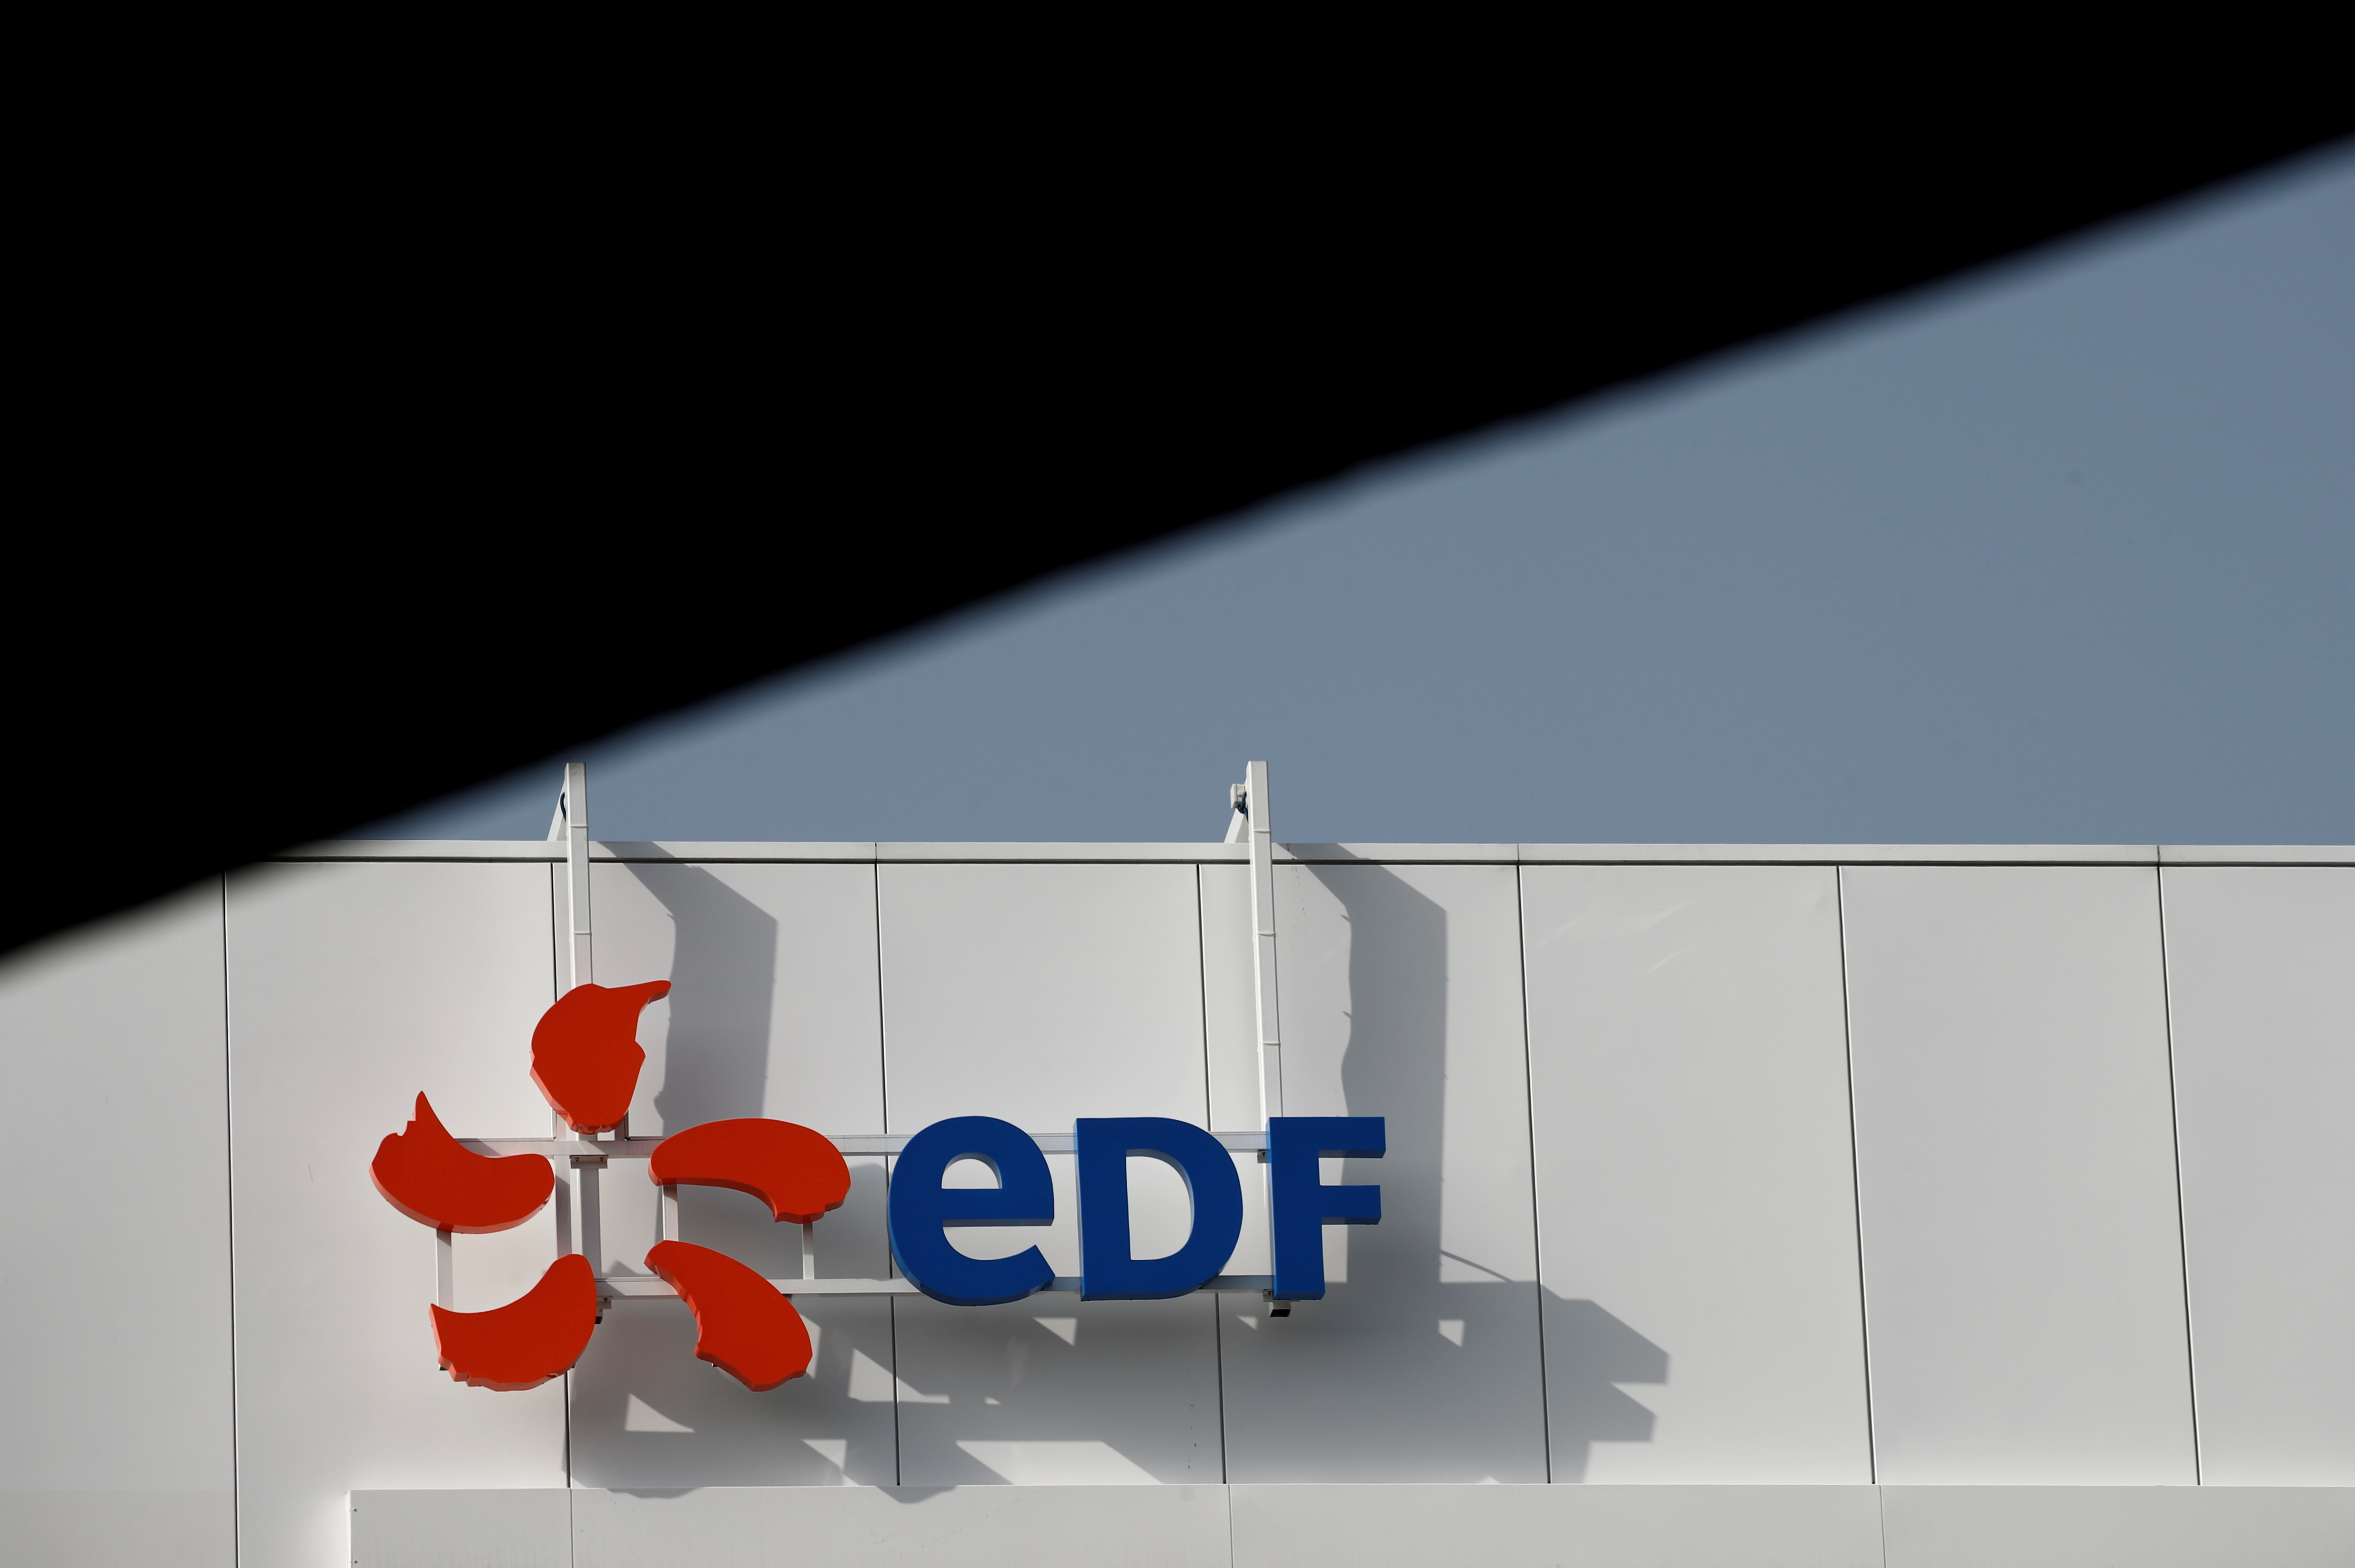 The company logo for Electricite de France (EDF) is seen in Paris, France, March 2, 2021. REUTERS/Benoit Tessier